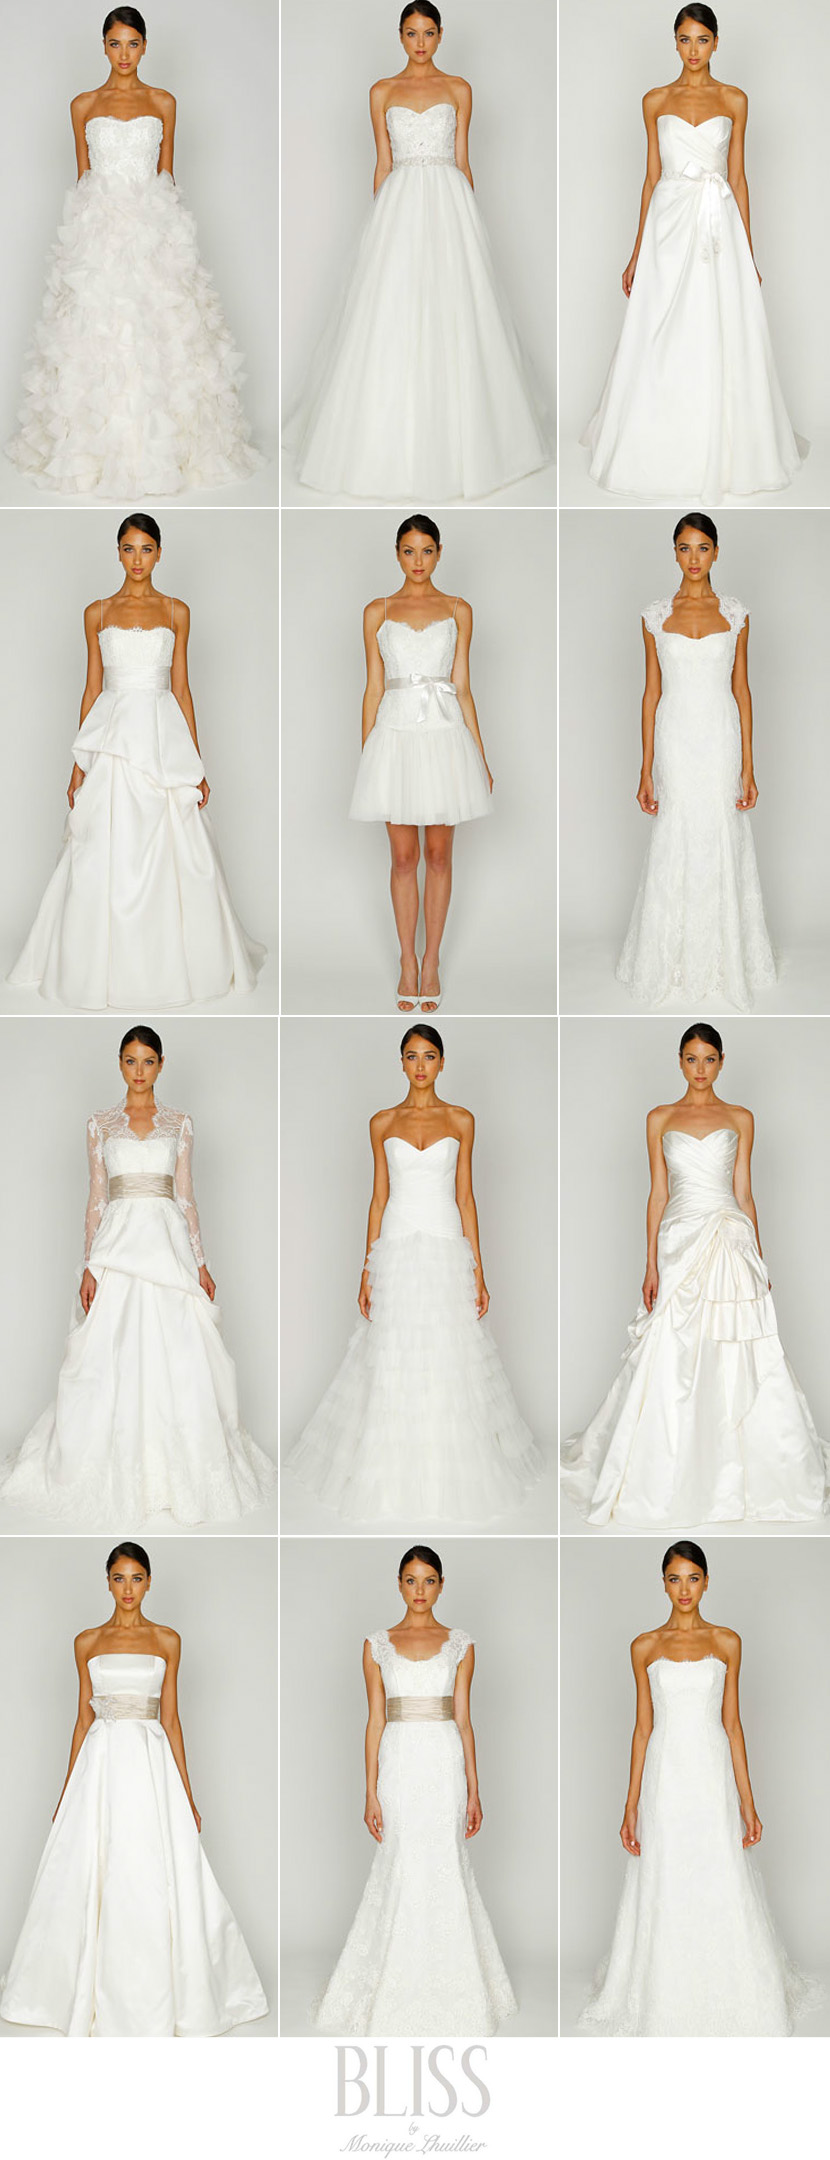 spring 2012 bliss by monique lhuillier